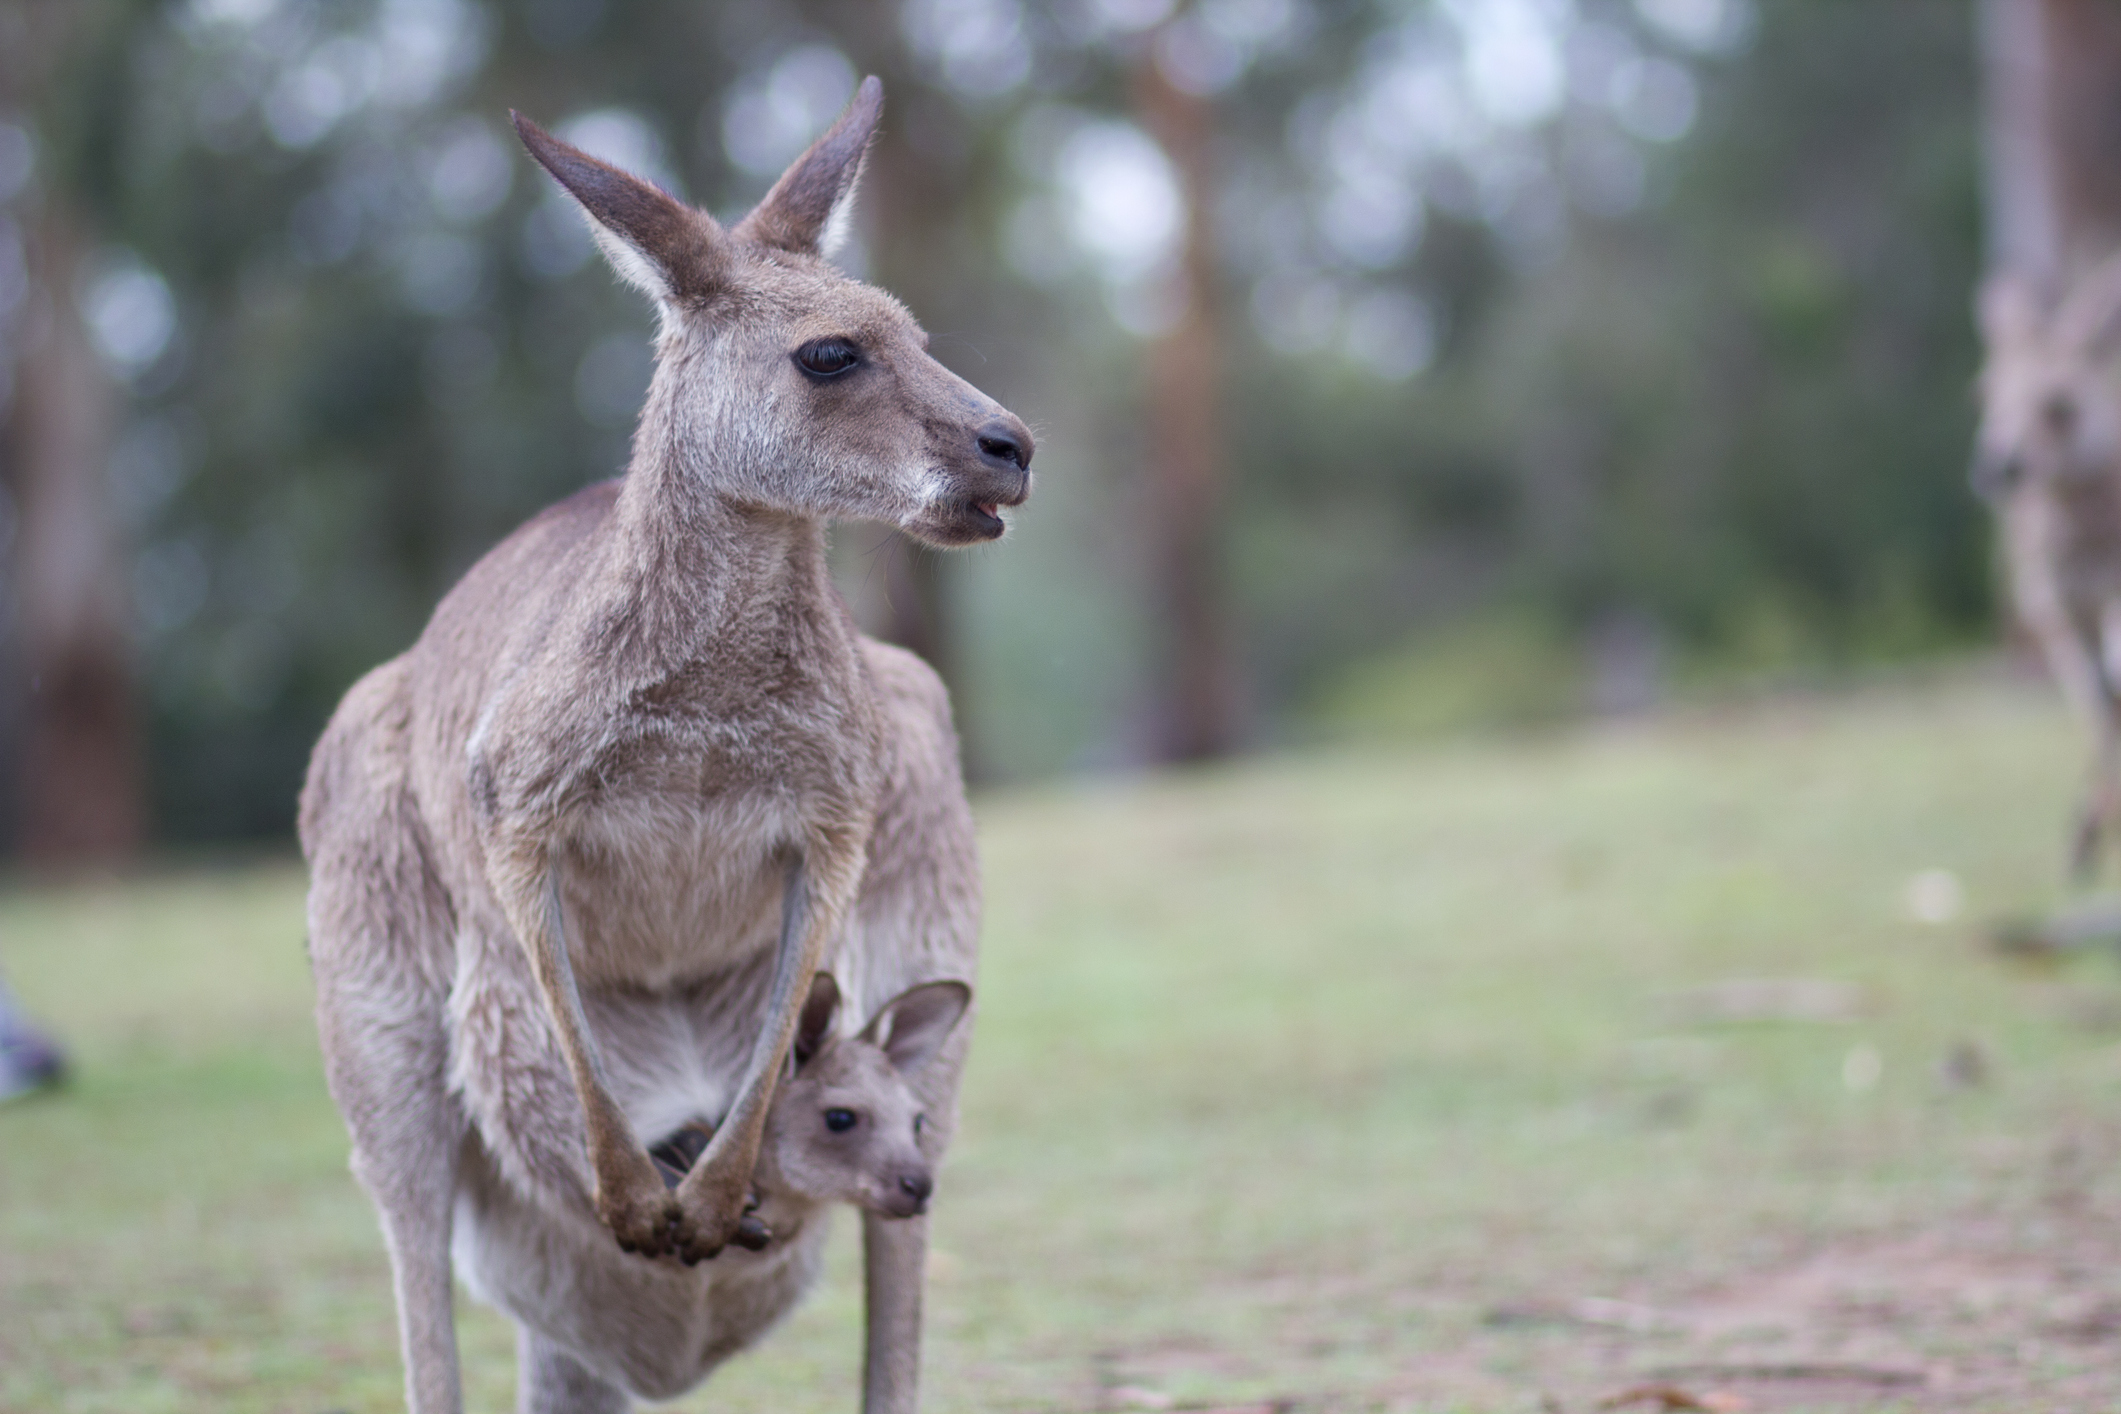 Kangaroo With Baby In Pouch On Field.